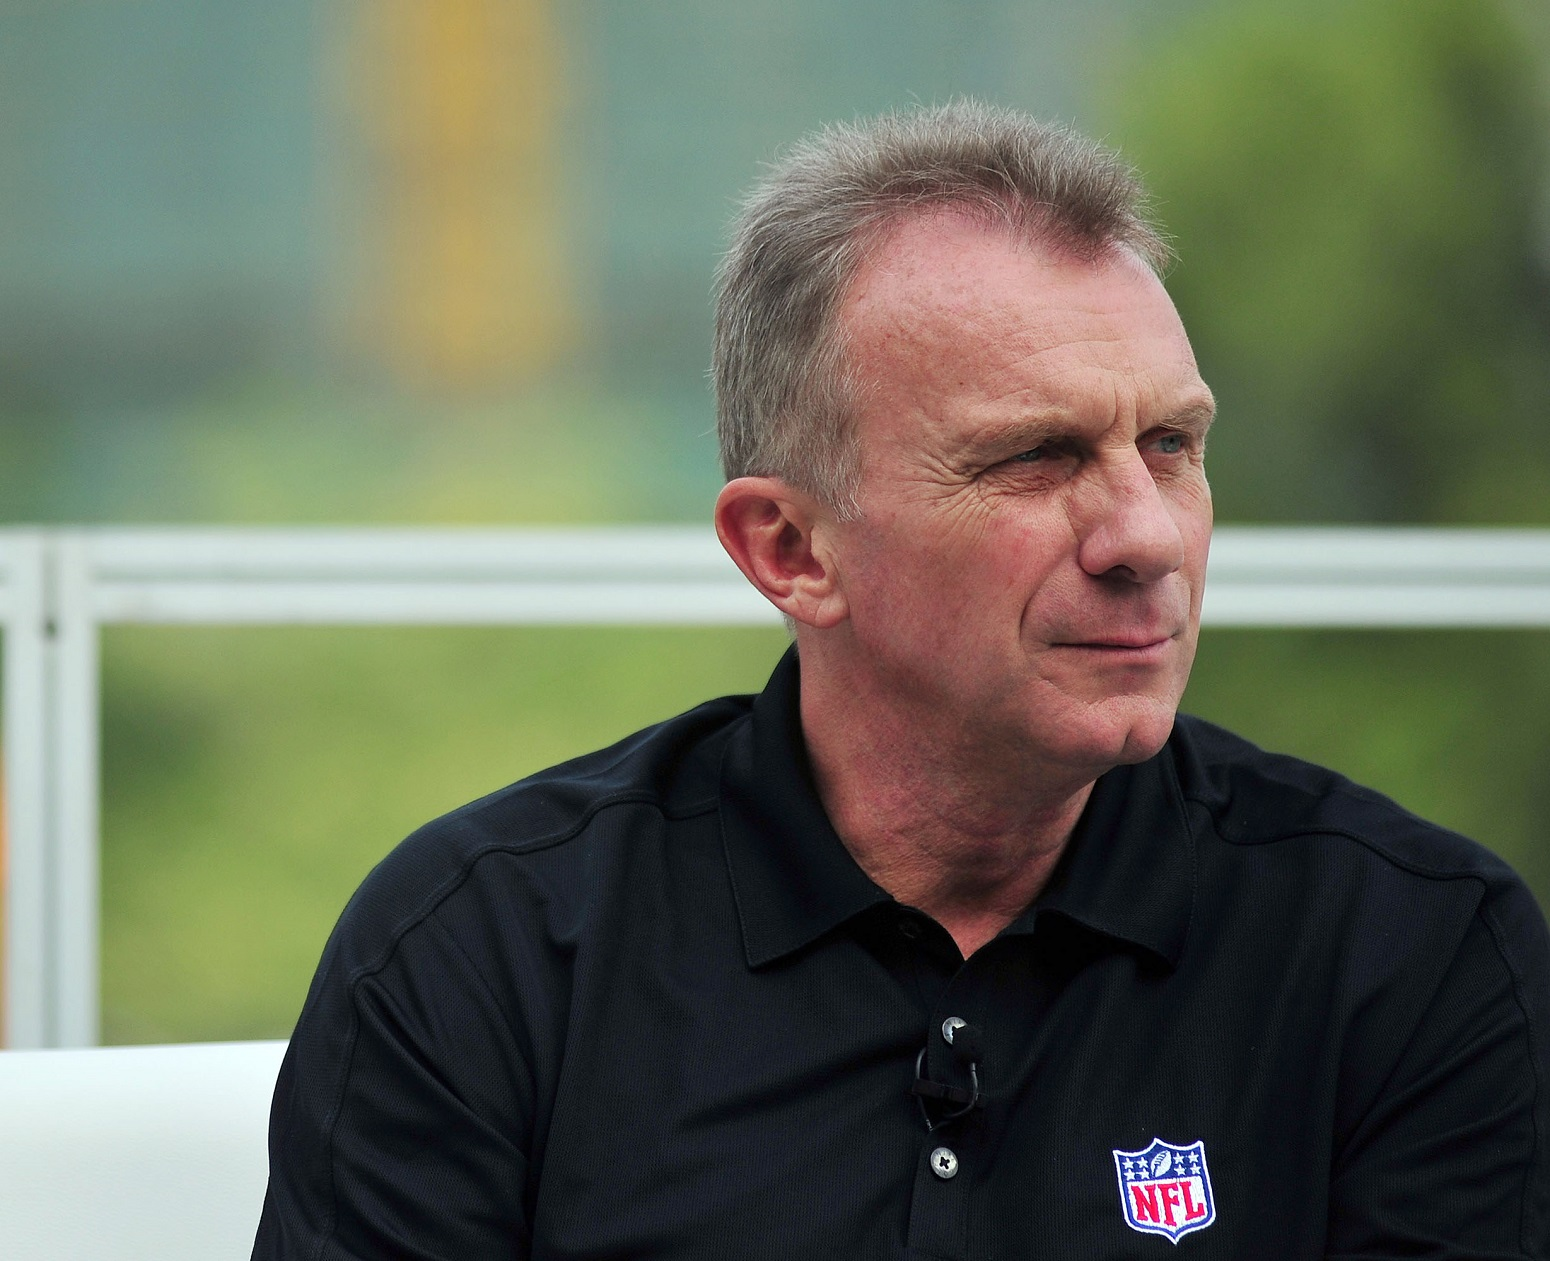 Joe Montana Just Avoided a Tragic Situation With a Heroic Act